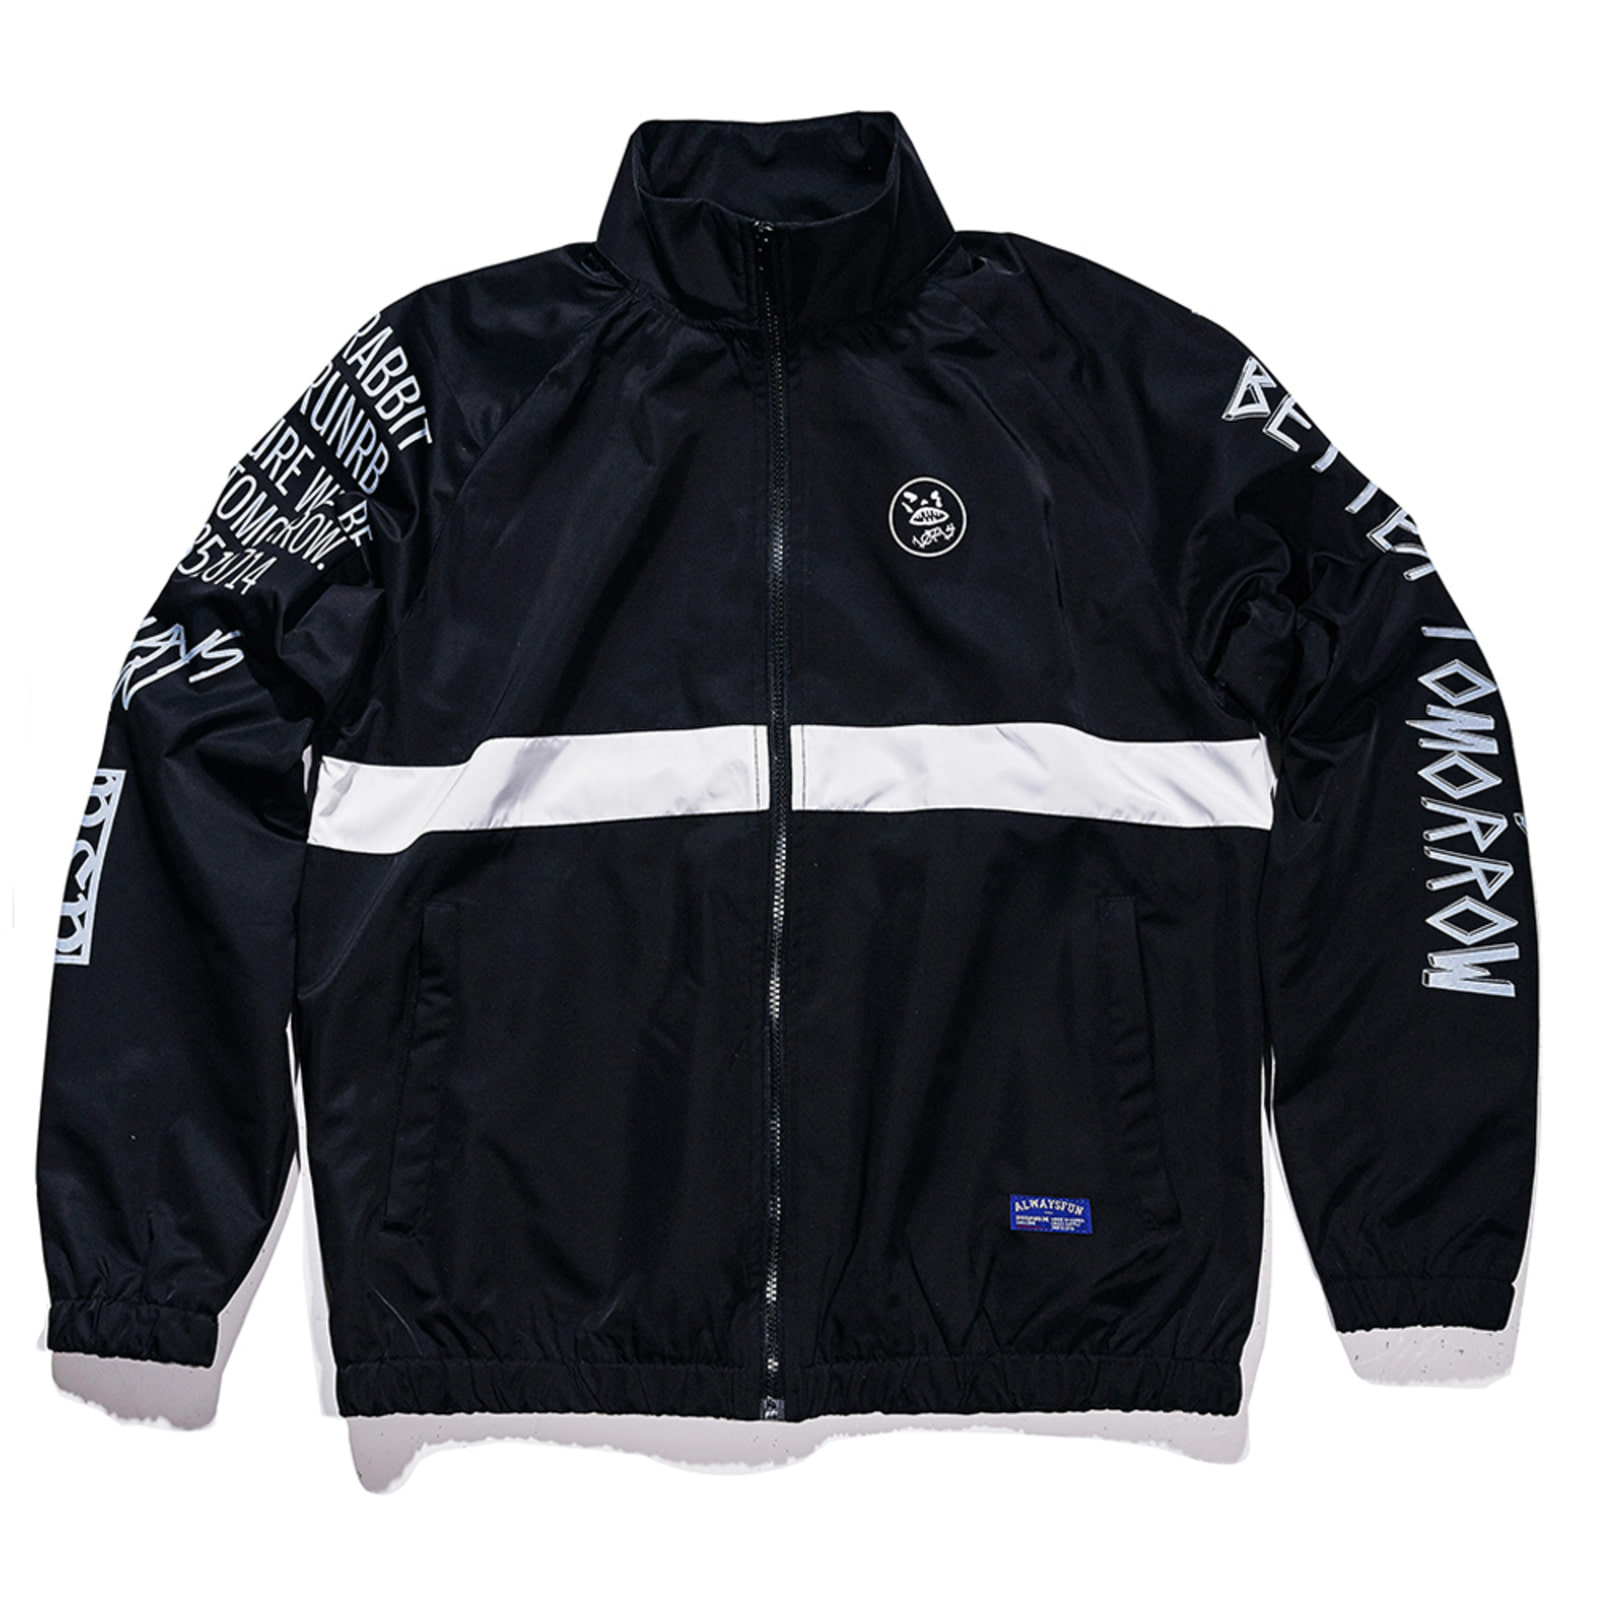 Crush track jacket Black